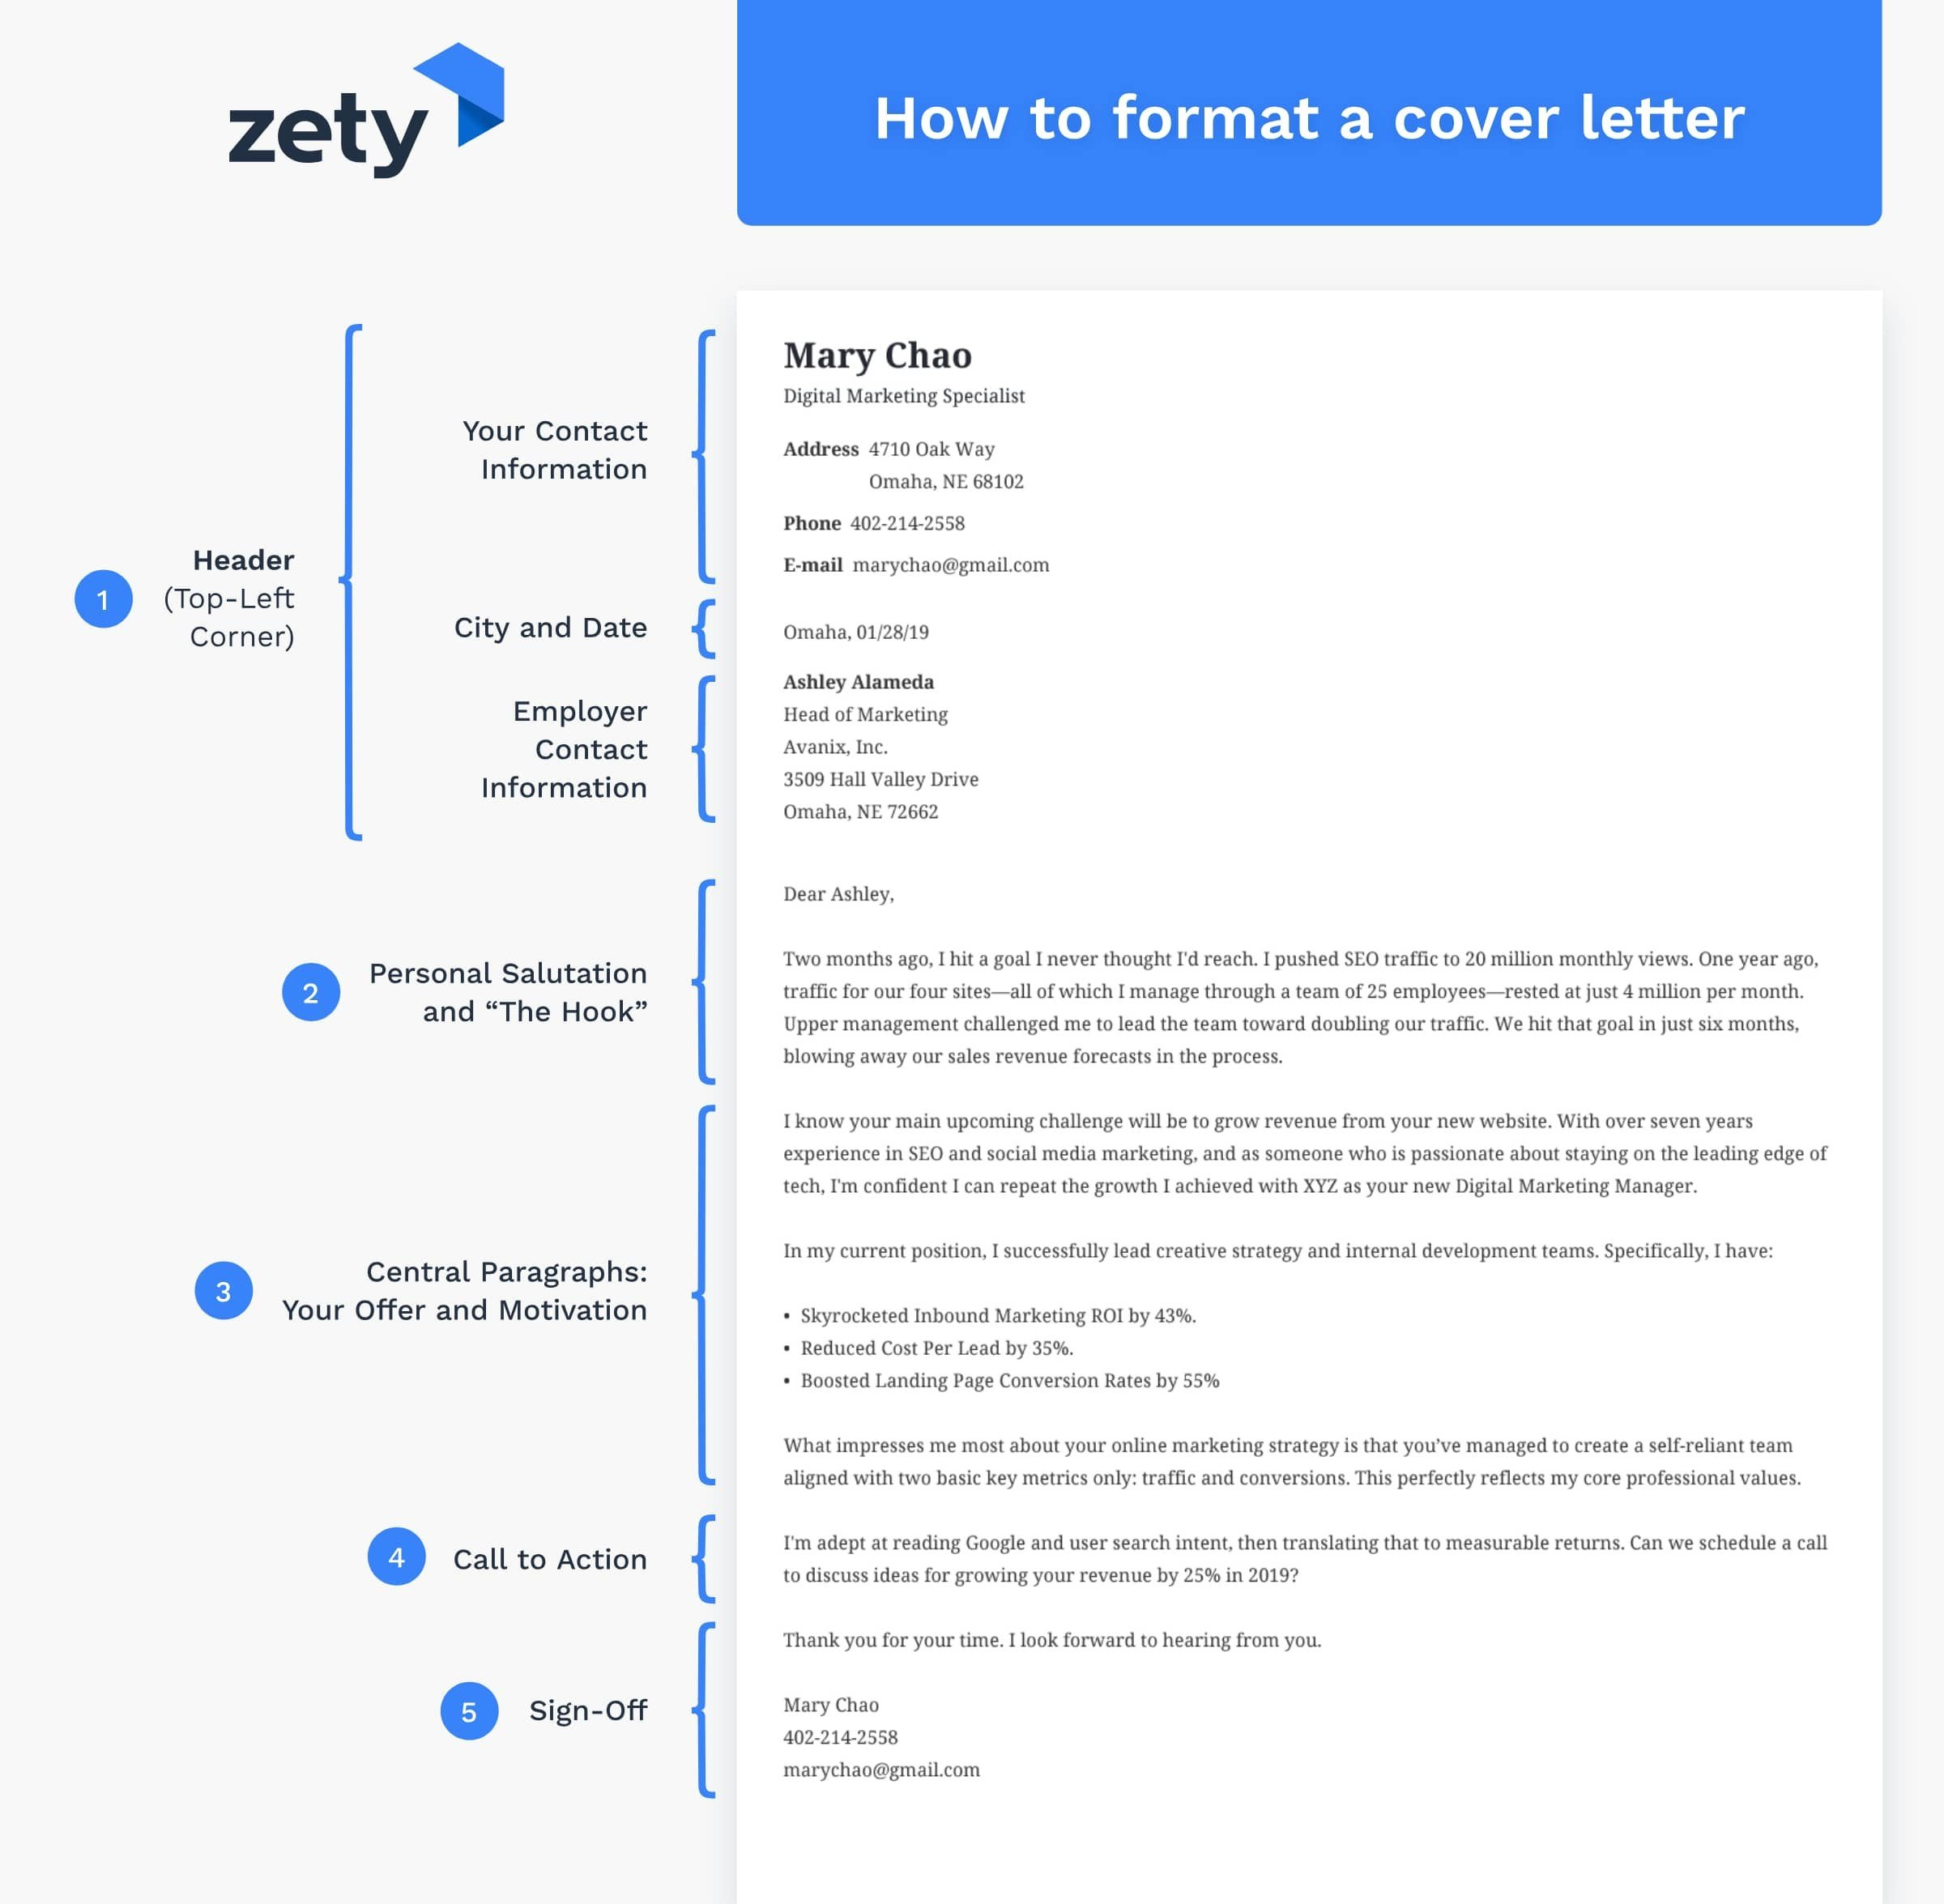 how to format a cover letter for a job application  layout tips